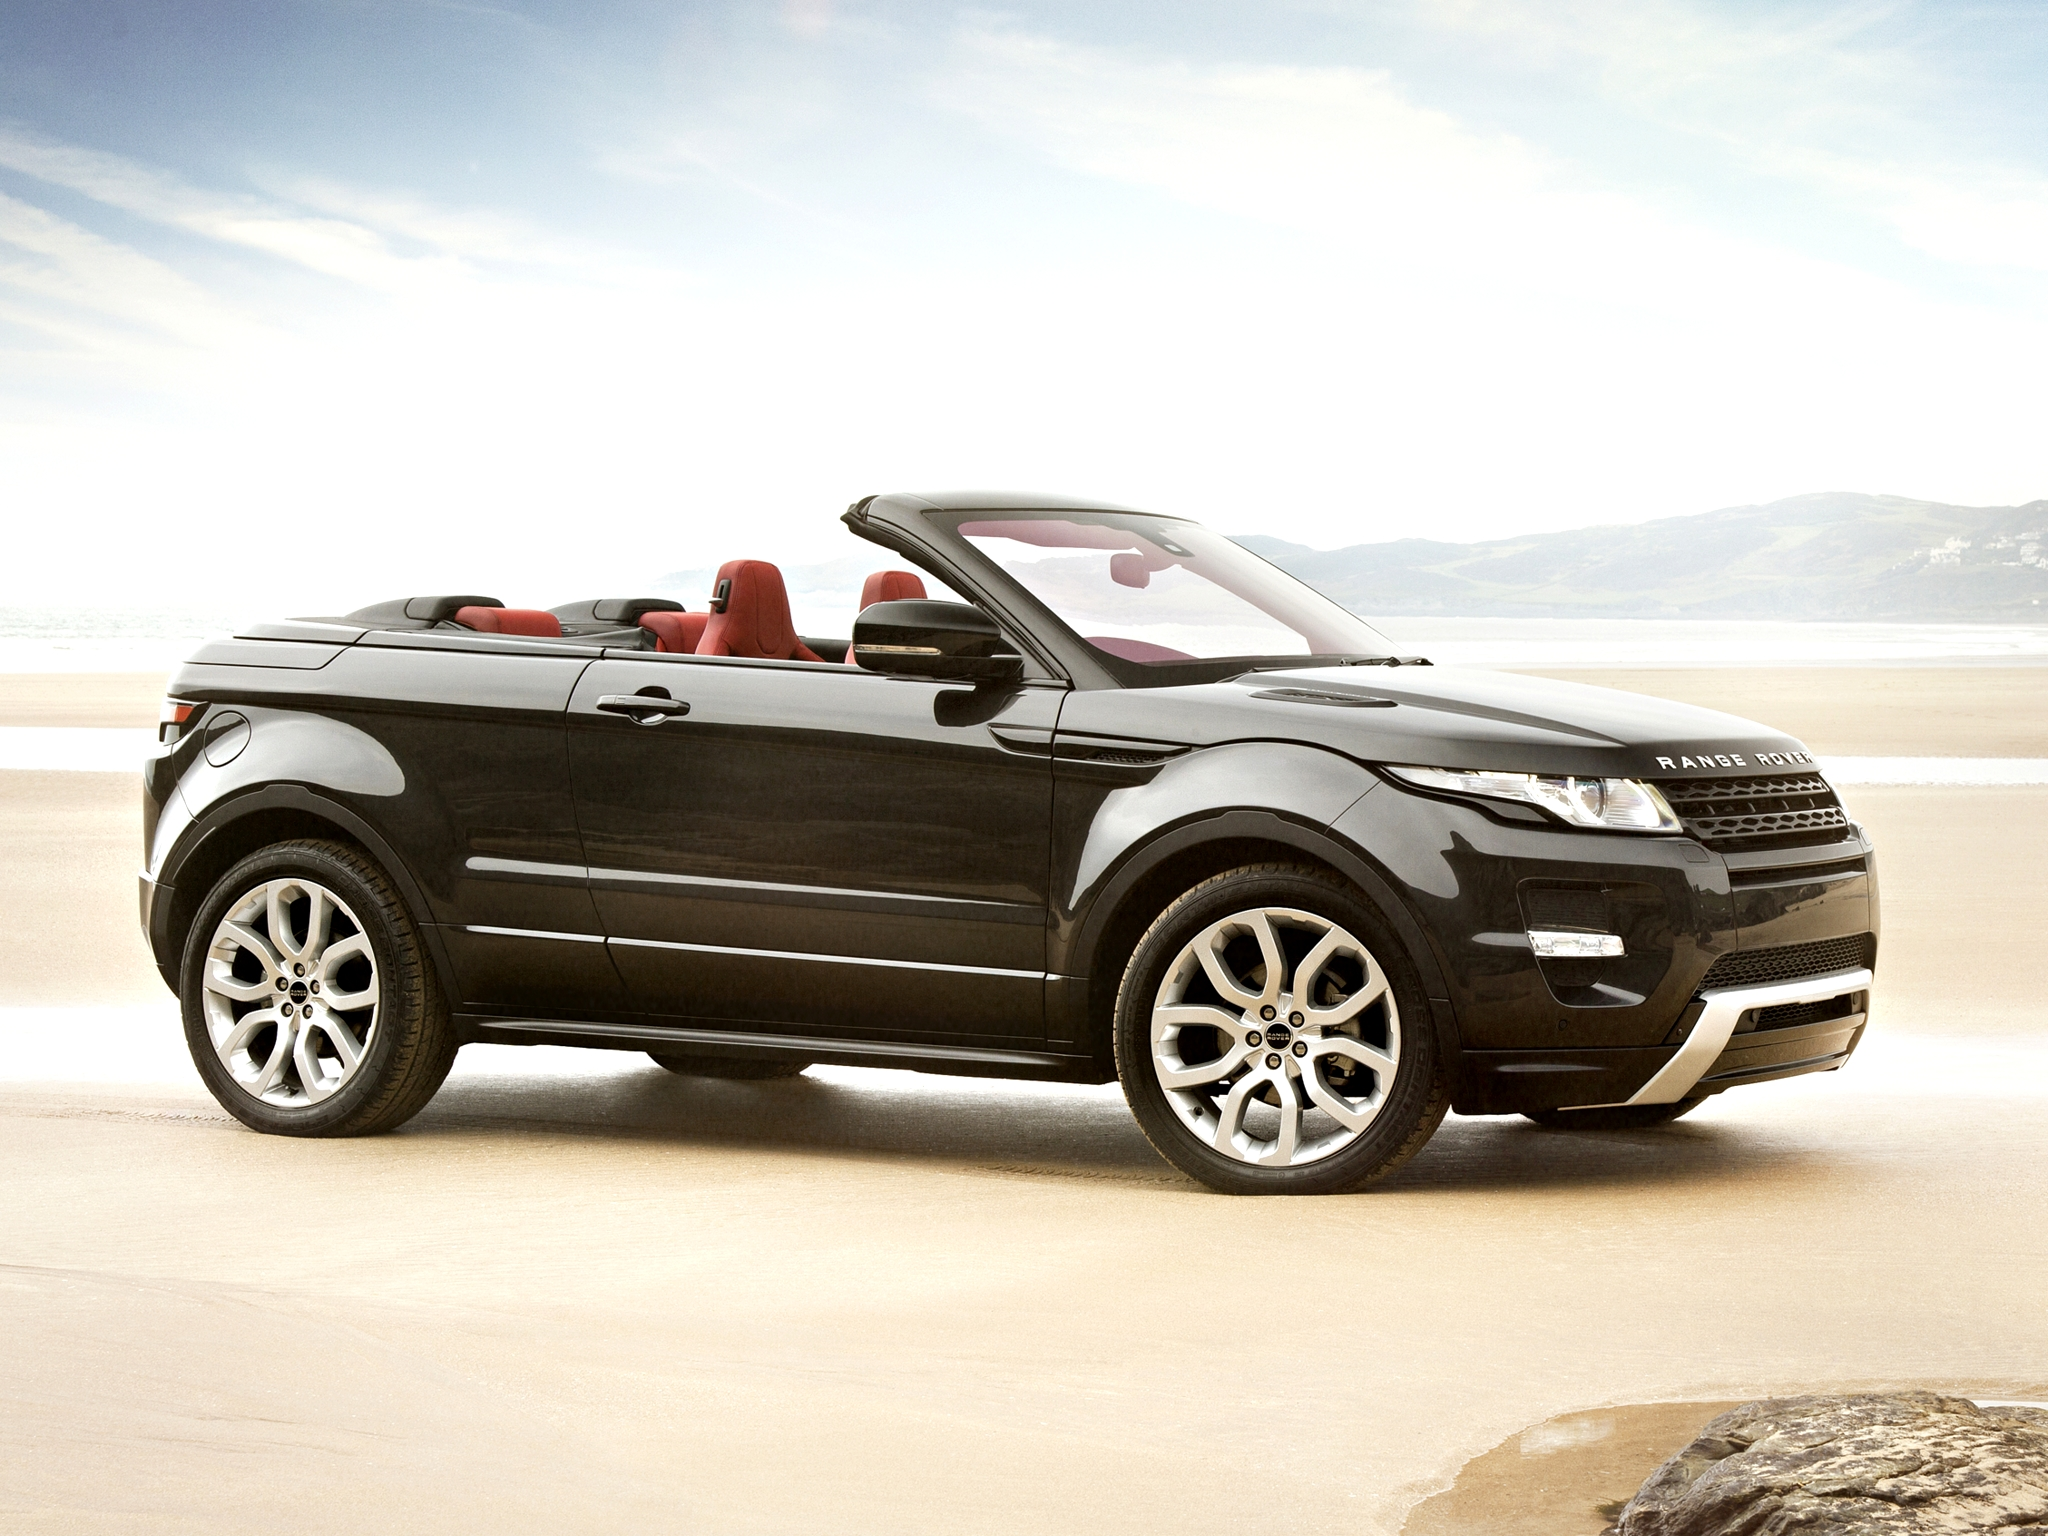 Range Rover Black >> Range Rover Evoque Convertible enters production in 2014 - ForceGT.com